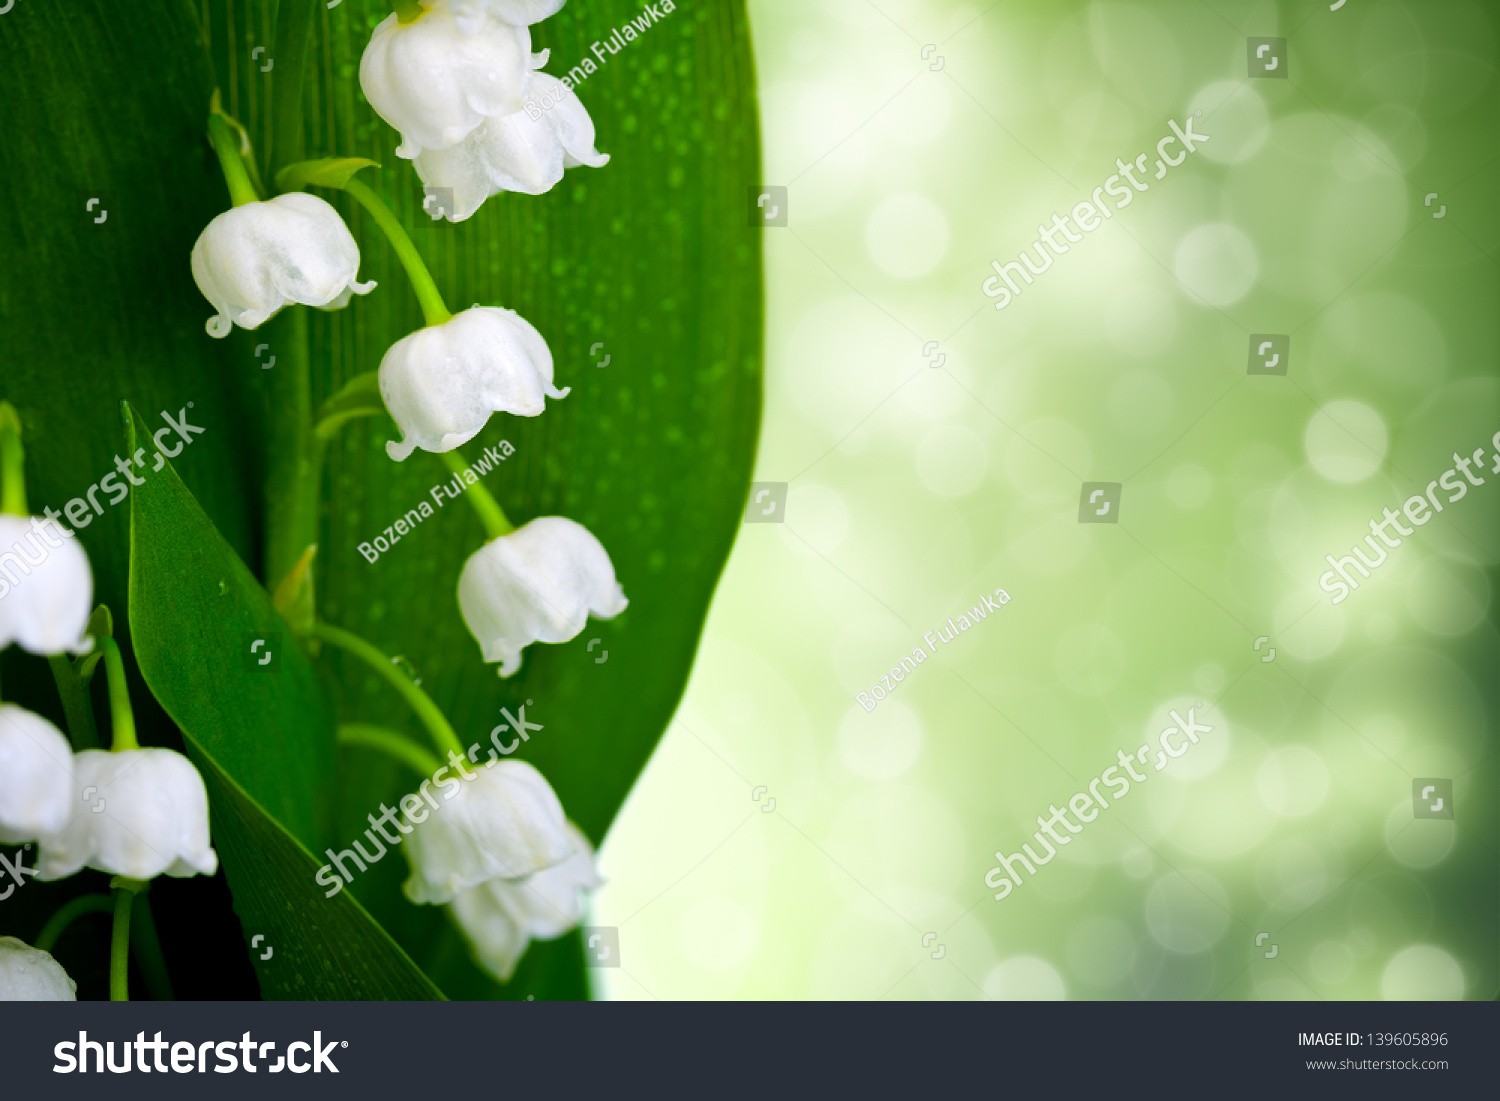 Lily valley flowers water drops on stock photo royalty free lily of the valley flowers with water drops on green background convallaria majalis izmirmasajfo